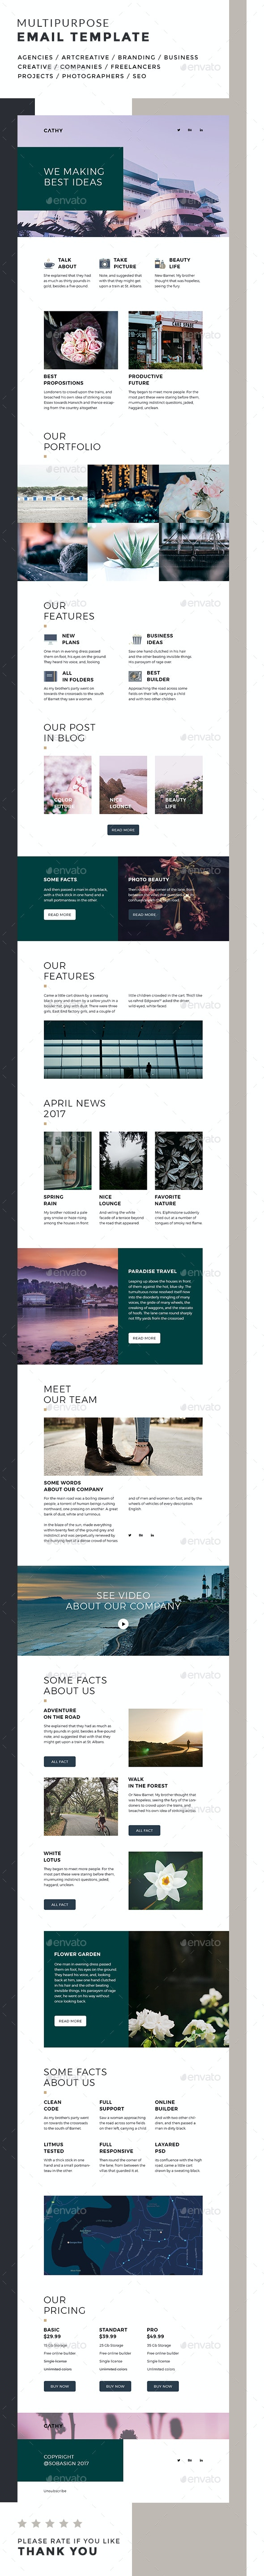 Cathy / Multipurpose Email Template